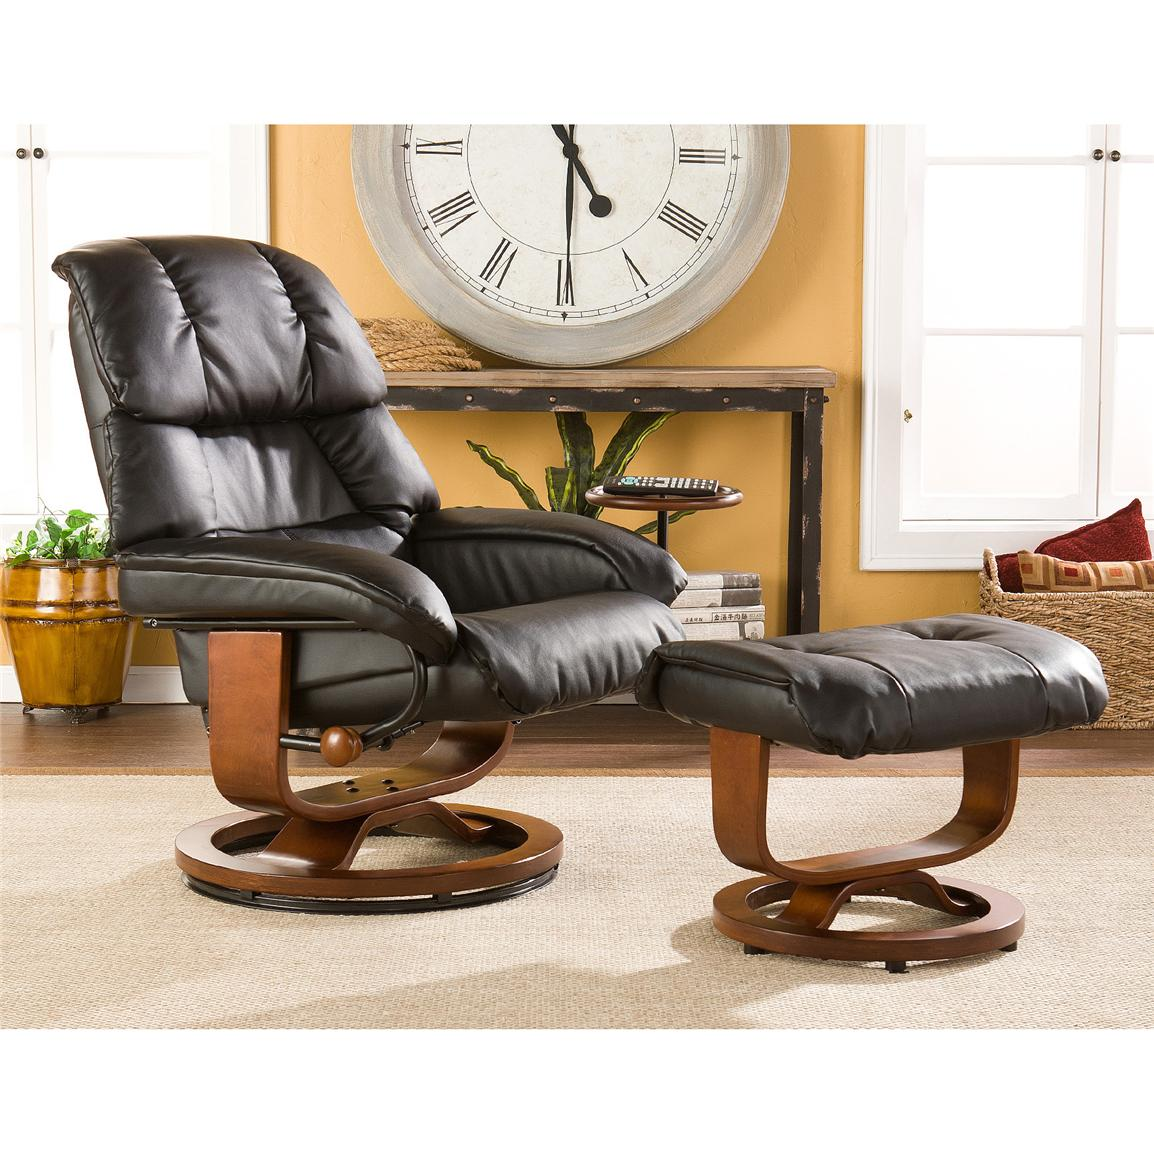 Canyon Lake Leather Recliner and Ottoman, Black